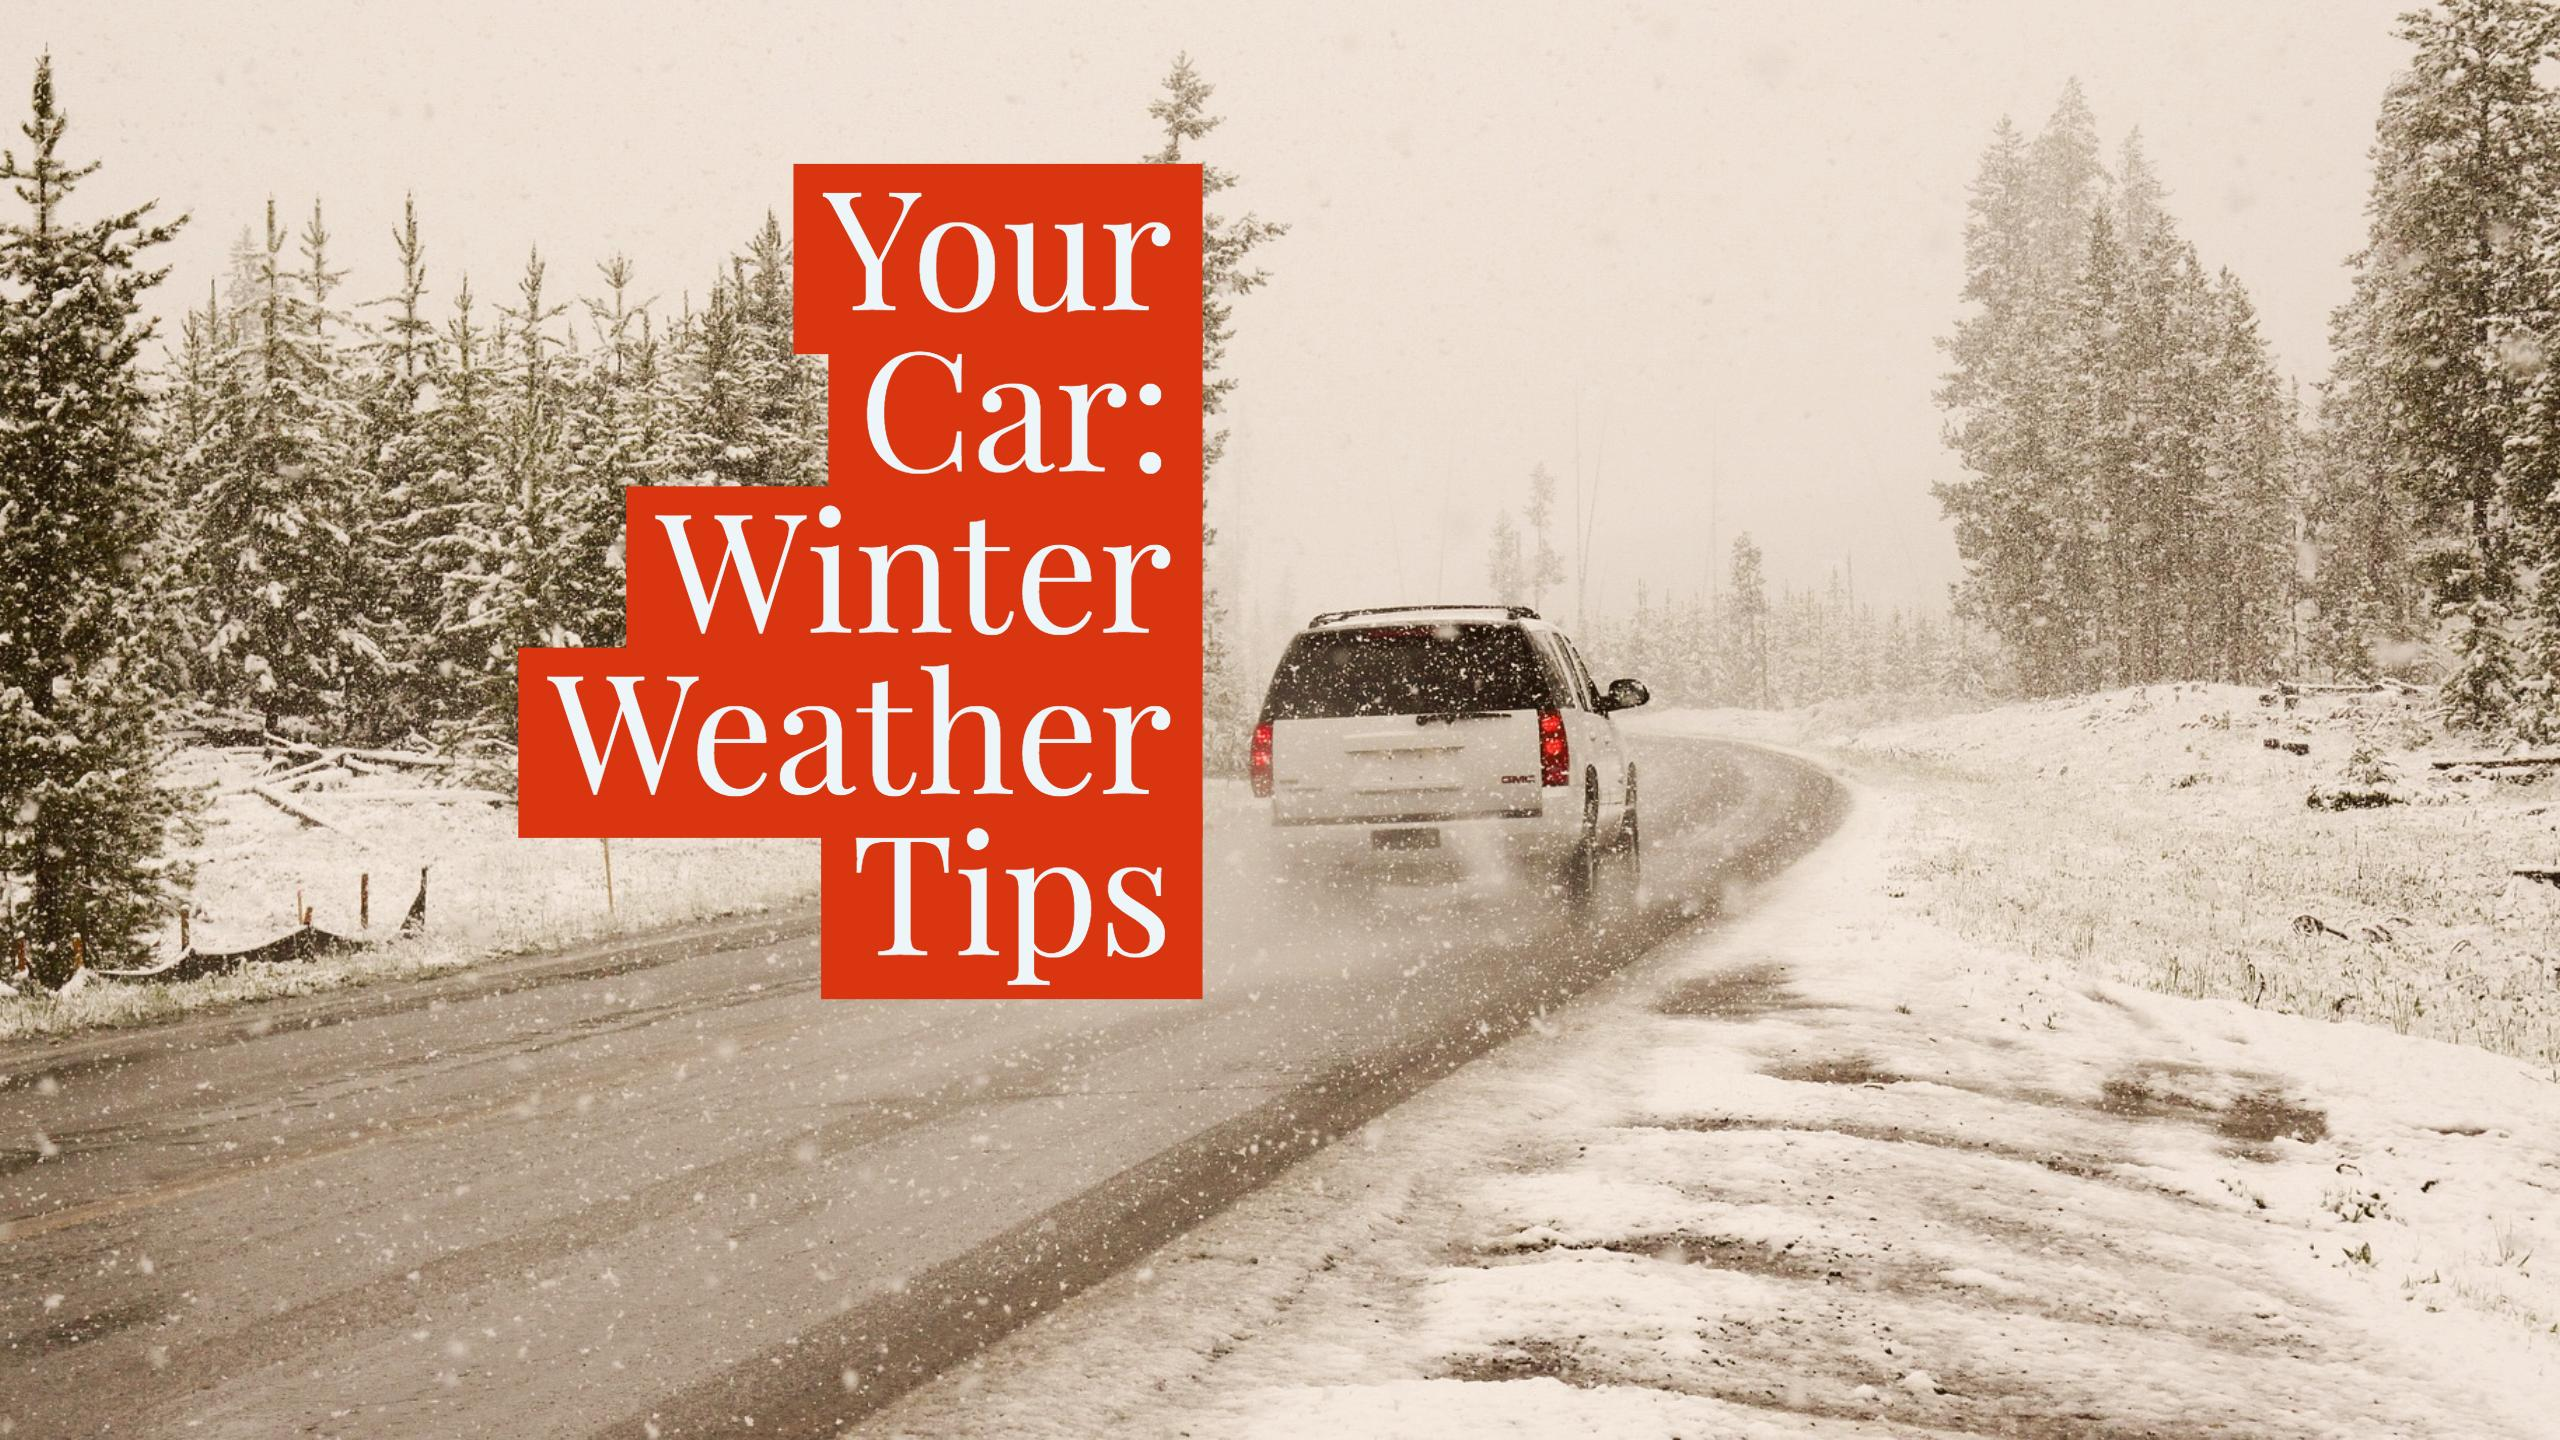 Ruitensproeier Antivries Action Cold Weather Checklist For Your Car Missouri Community